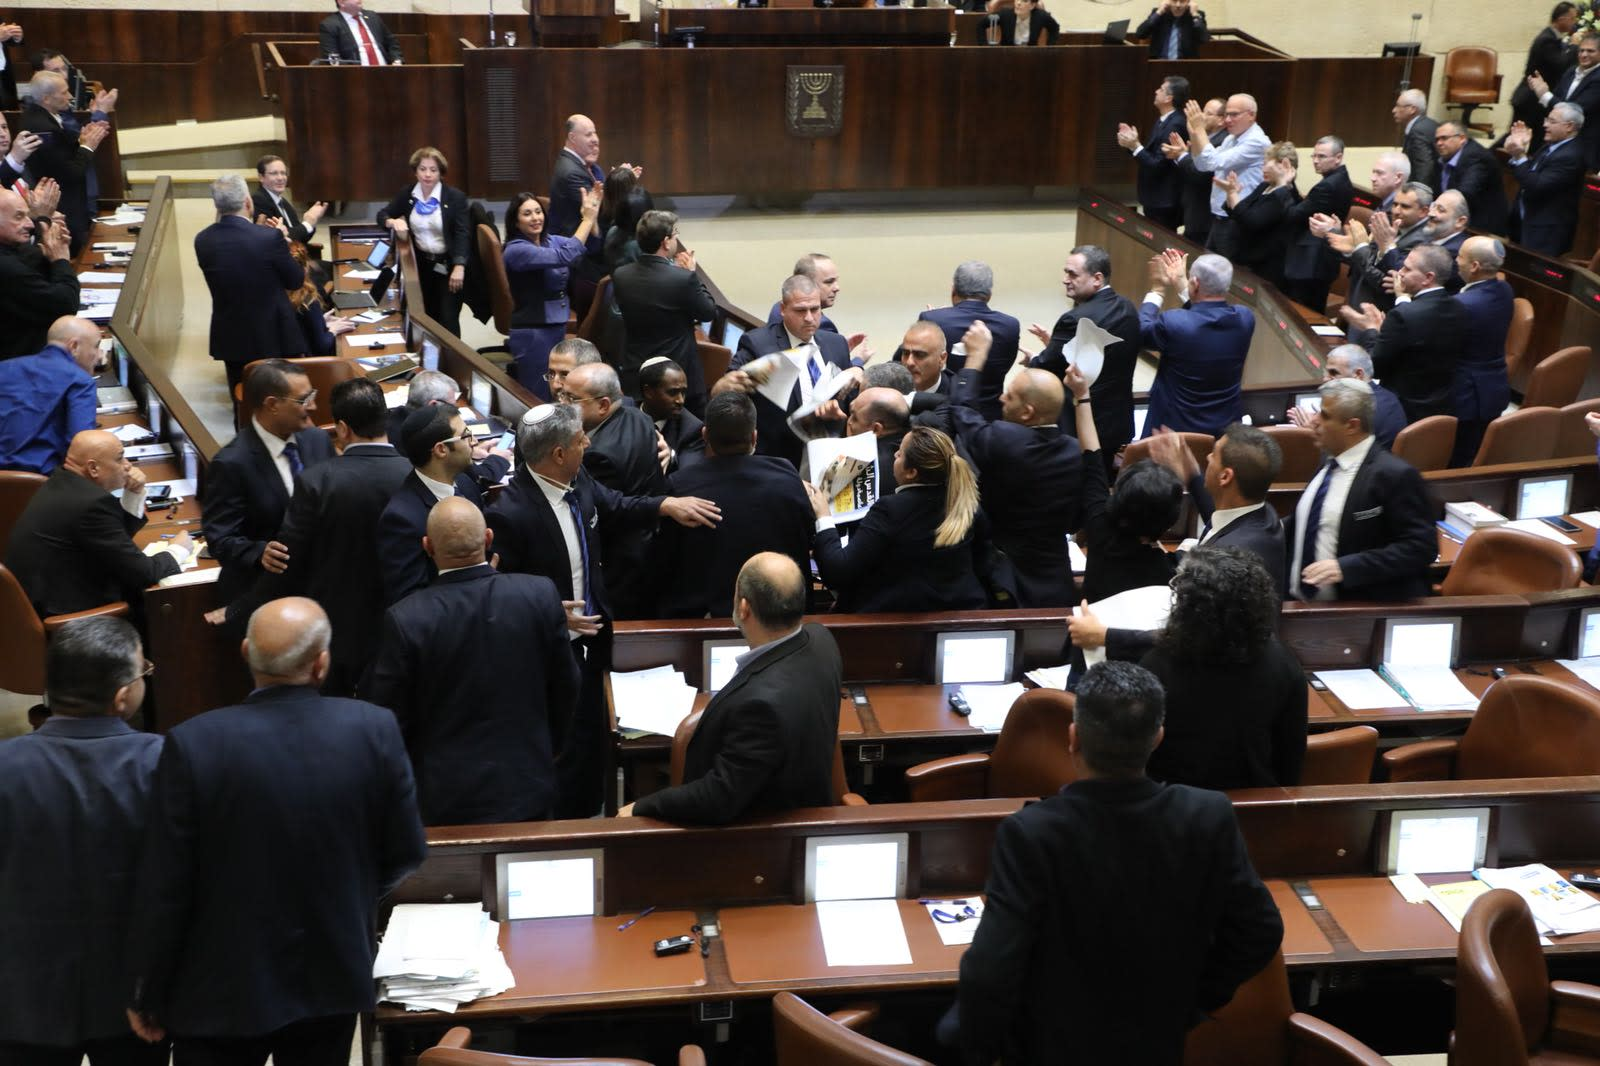 Arab lawmakers disrupt Vice President Pence's speech at the Knesset. (KNESSET SPEAKER'S OFFICE)